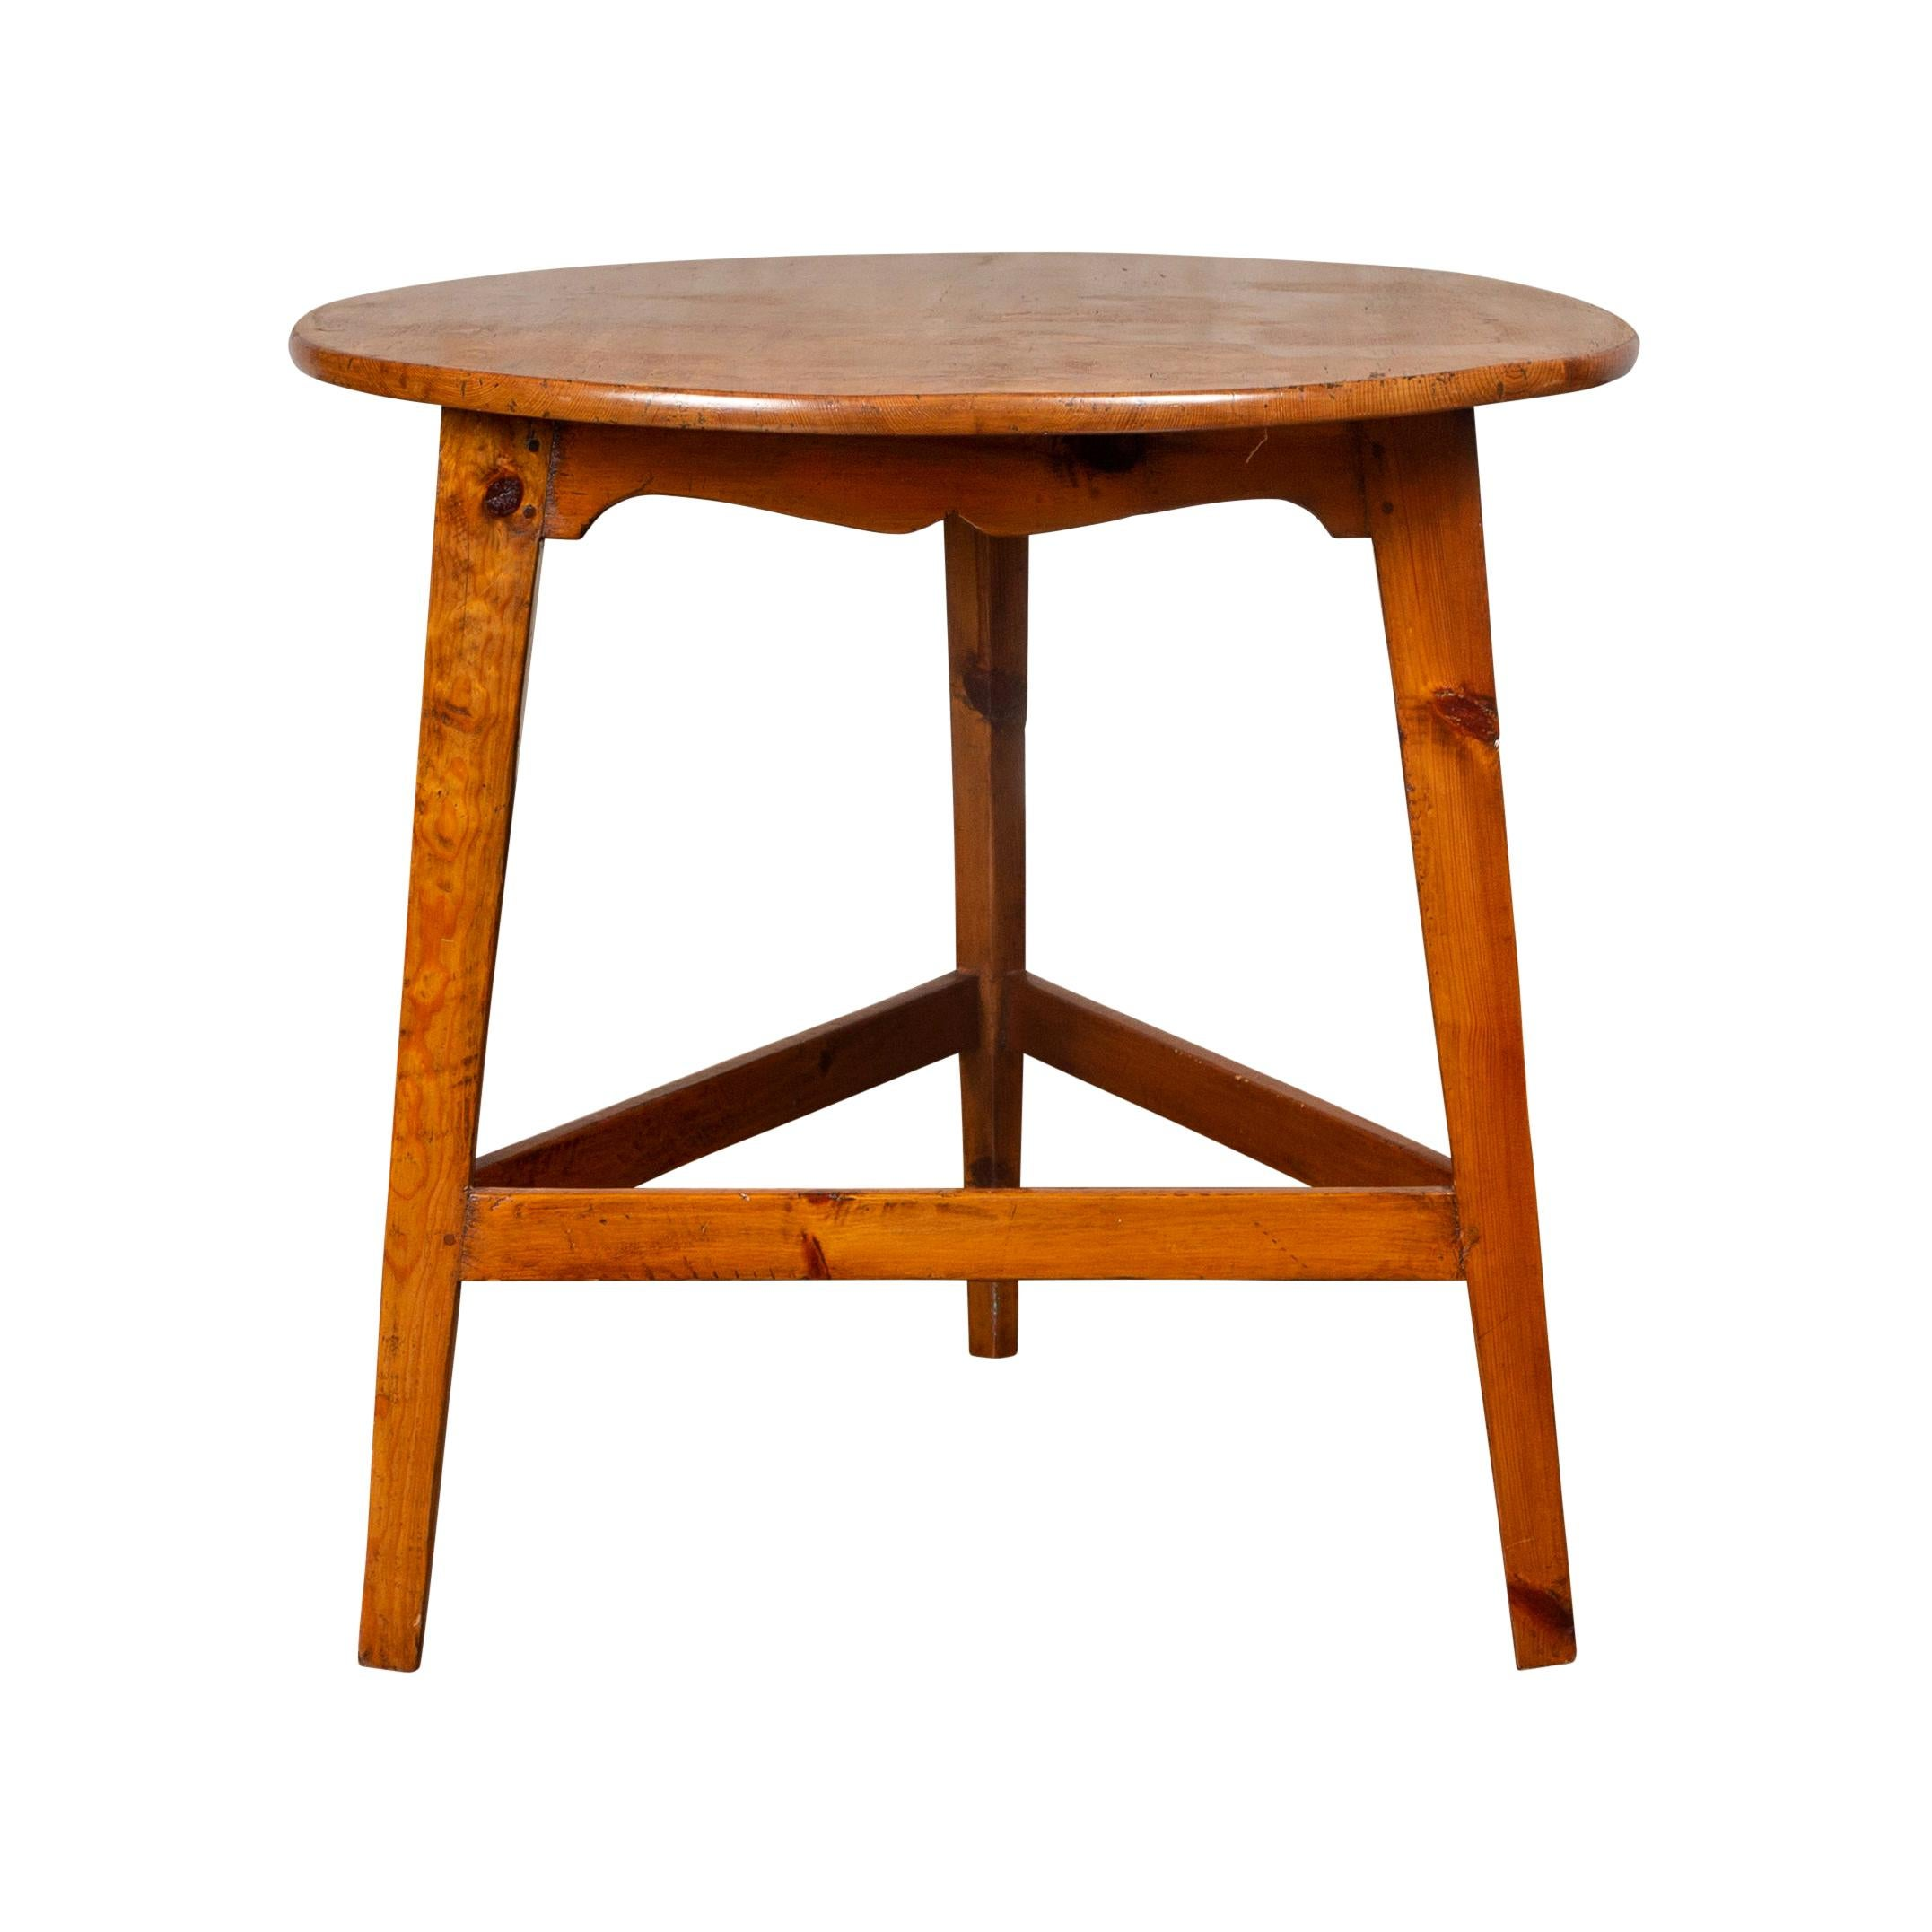 English 1870s Pine Cricket Table with Scalloped Apron and Side Stretchers